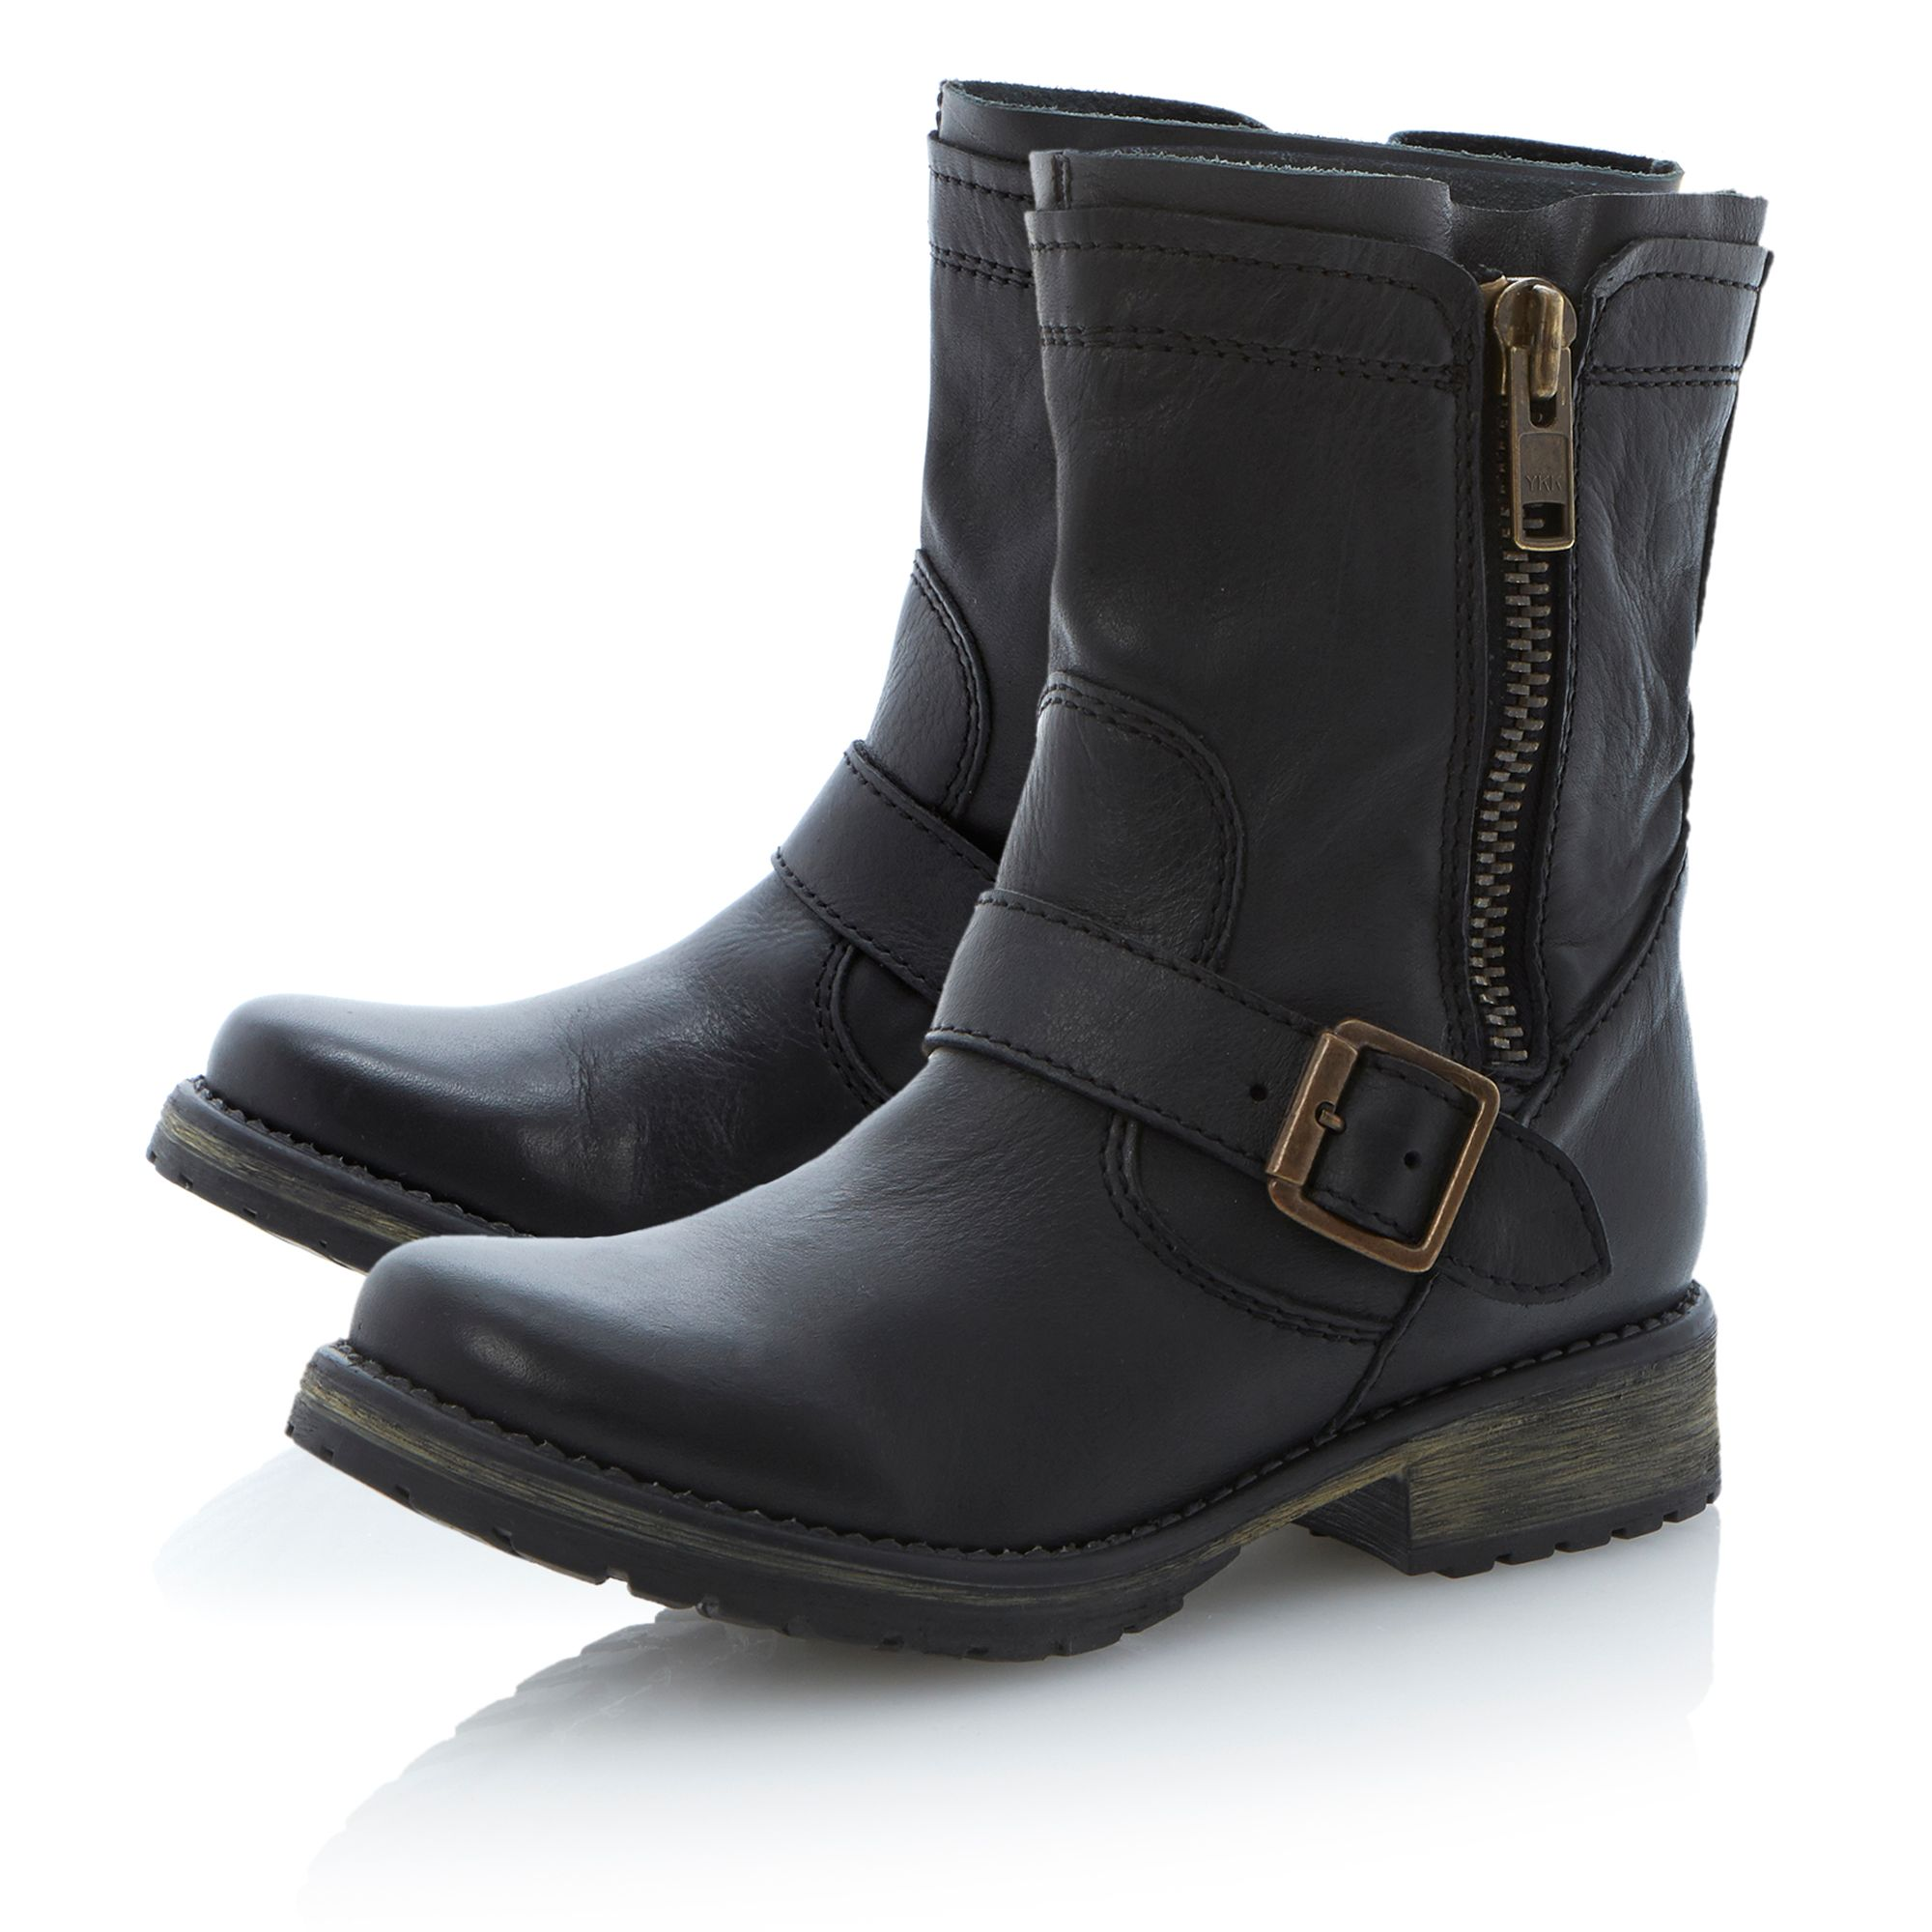 steve madden forrt zipside cleated biker boots in black lyst. Black Bedroom Furniture Sets. Home Design Ideas